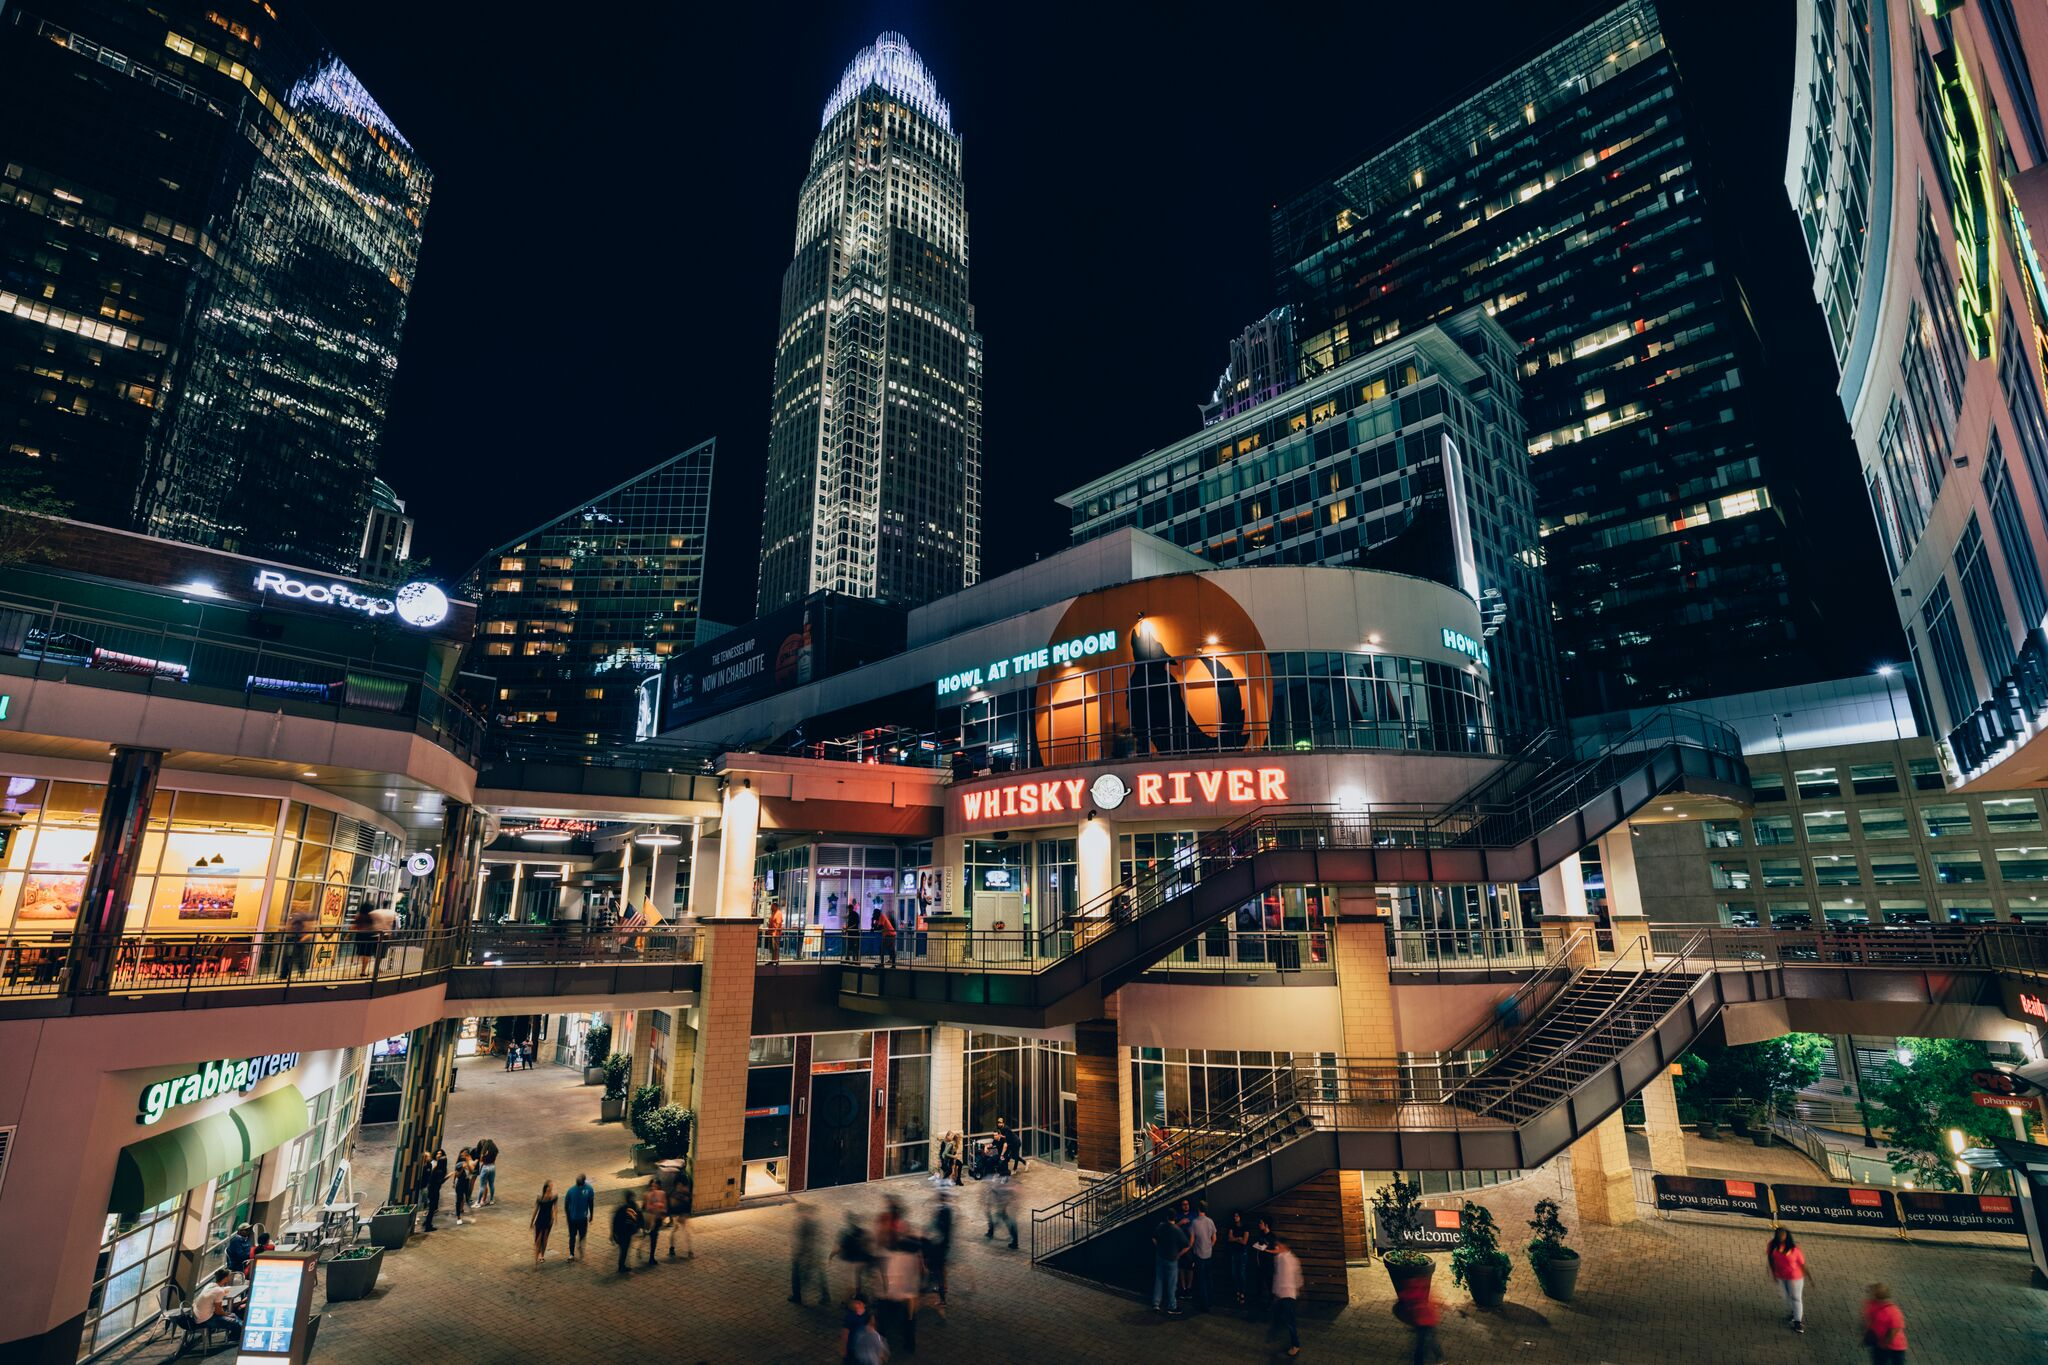 101 Fun Things To Do In Charlotte NC